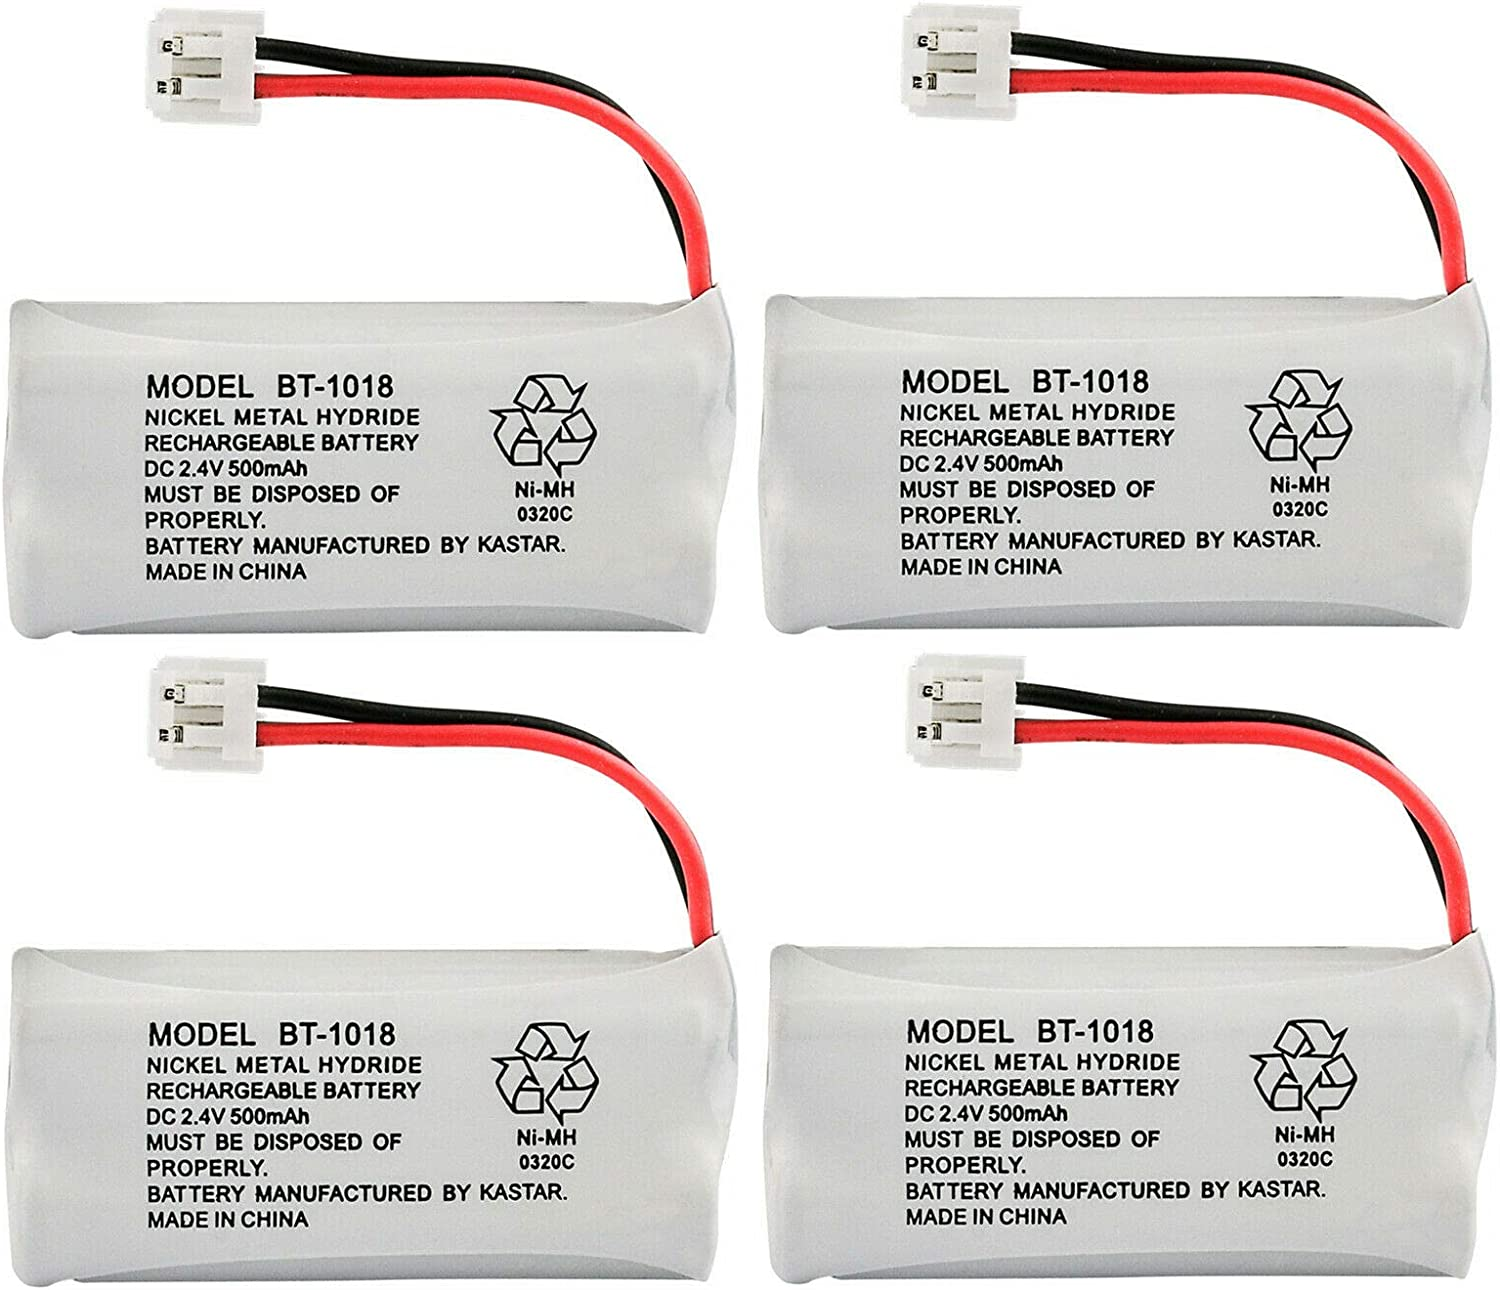 Kastar 4-Pack Battery Replacement for GE 28127FE2 28203 2-8203 28213 2-8213 28213EE1 28213EE2 28223 2-8223 28223EE2 28801 2-8801 28802 2-8802 28802FE1 28811 2-8811 28811FE2 28821 2-8821 28821FE2